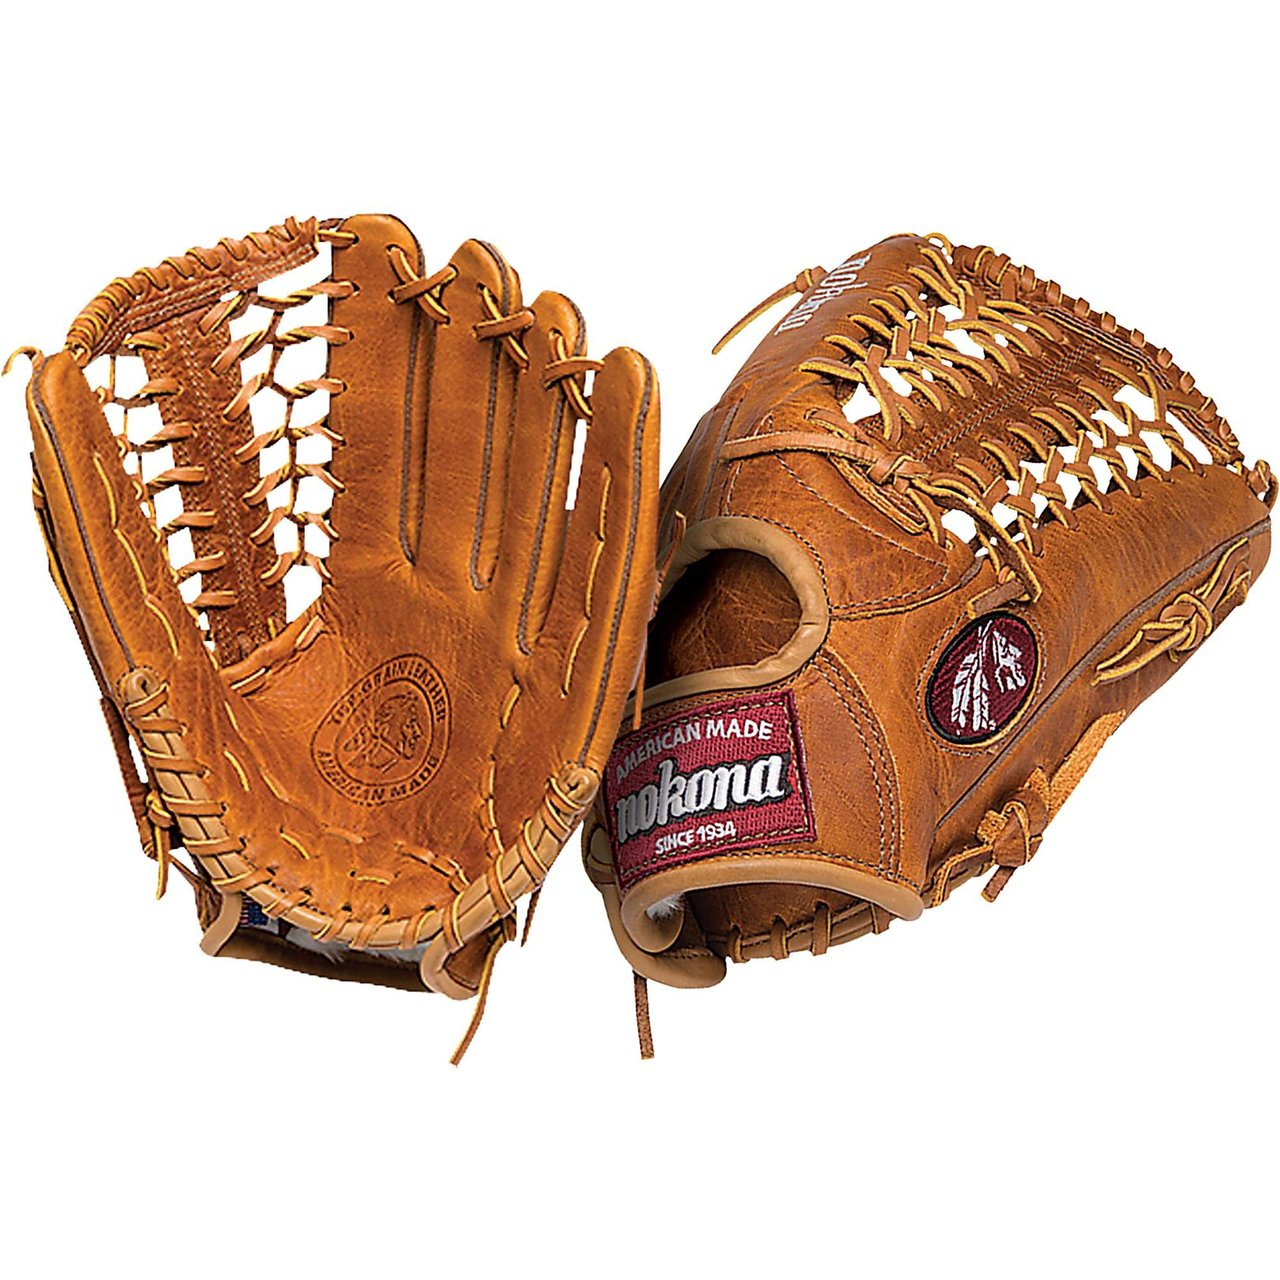 Nokona Generaton Series 12.75 inch Outfield Baseball Glove. Modified Trap Web. Generation Steerhide has a traditional saddle tannage – a throwback leather with a rich color, and a natural, supple feel. Generation Steerhide has a medium weight, and creates good structure and fit. 12.75 inch outfield pattern. Modified Trap Web And Open Back. Generation Leather Scheme Steerhide. Genuine Shearling Cuff. Weight 650g. Handmade in the USA. One year warranty. G1275M. Inspired by Nokona's heritage of handcrafting ball gloves in America for the past 80 years, the Generation series has a beautiful, classic look, and is a high performance glove. Made with Nokona's proprietary Generation Steerhide leather, this glove is a showpiece on and off the field, and represents baseball gear at its finest. The Generation series takes you back to your roots, and harkens back to Nokona's roots as a company, with the introduction of their original G Series in 1934. Inspired by this classic series, the Generation is a glove to be enjoyed for generations, as its look and fit will be enhanced as you use it and make it your own. For any player who loves the game, the Generation series has a comfortable, supple feel and is easy to break in.